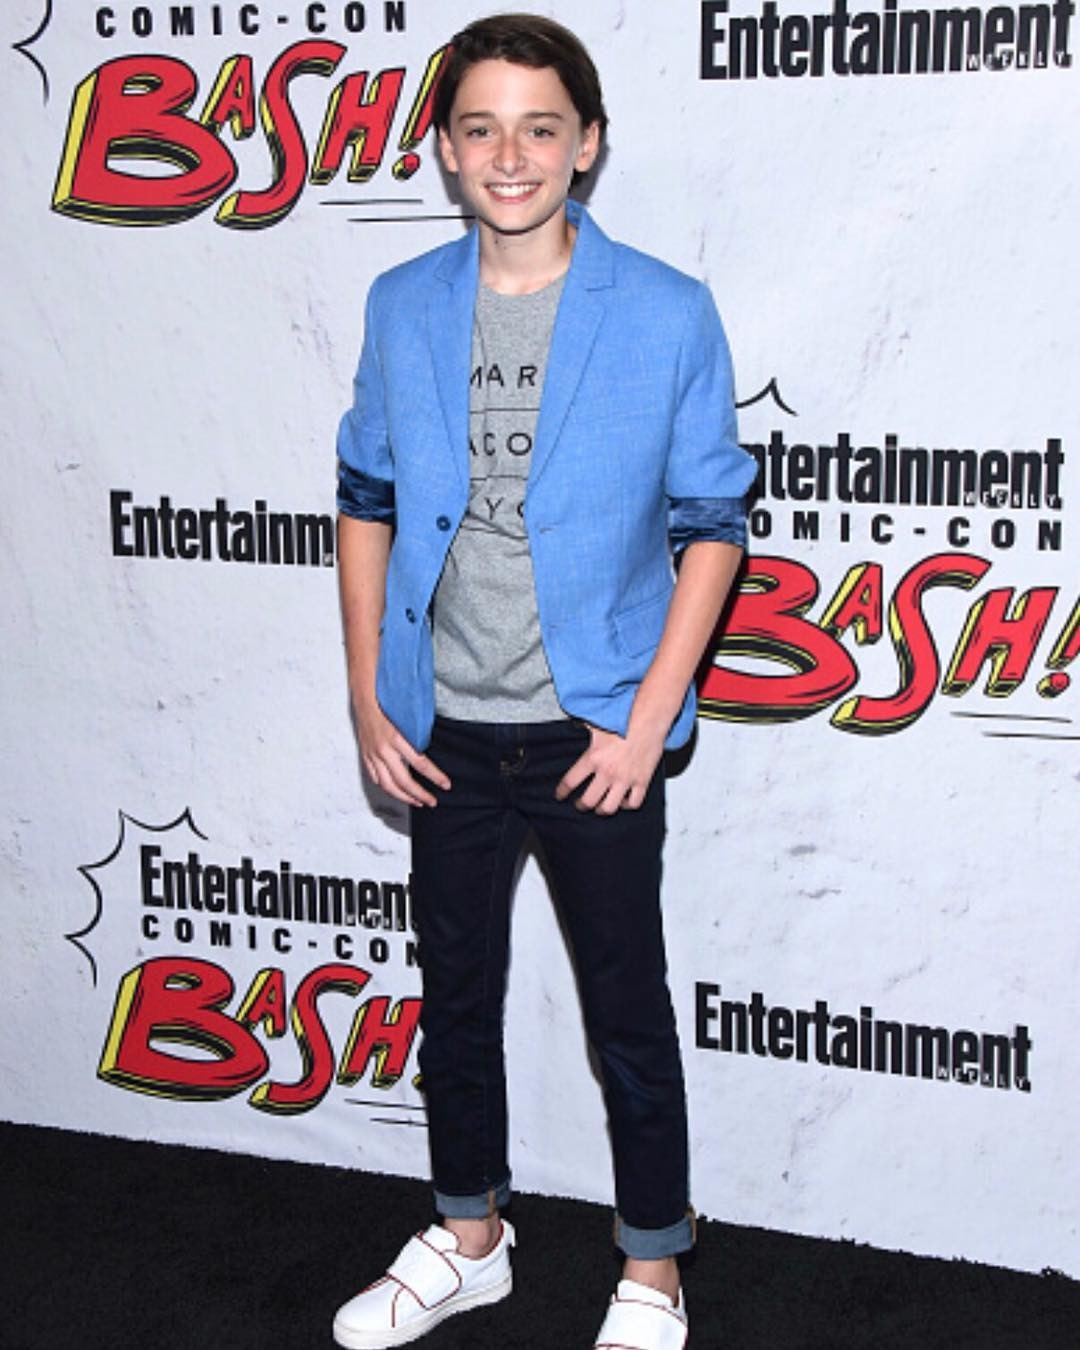 Noah Schnapp looks adorable while he poses for the camera with his innocent smile. He is the main character in the second season of the Netflix's Stranger Things.